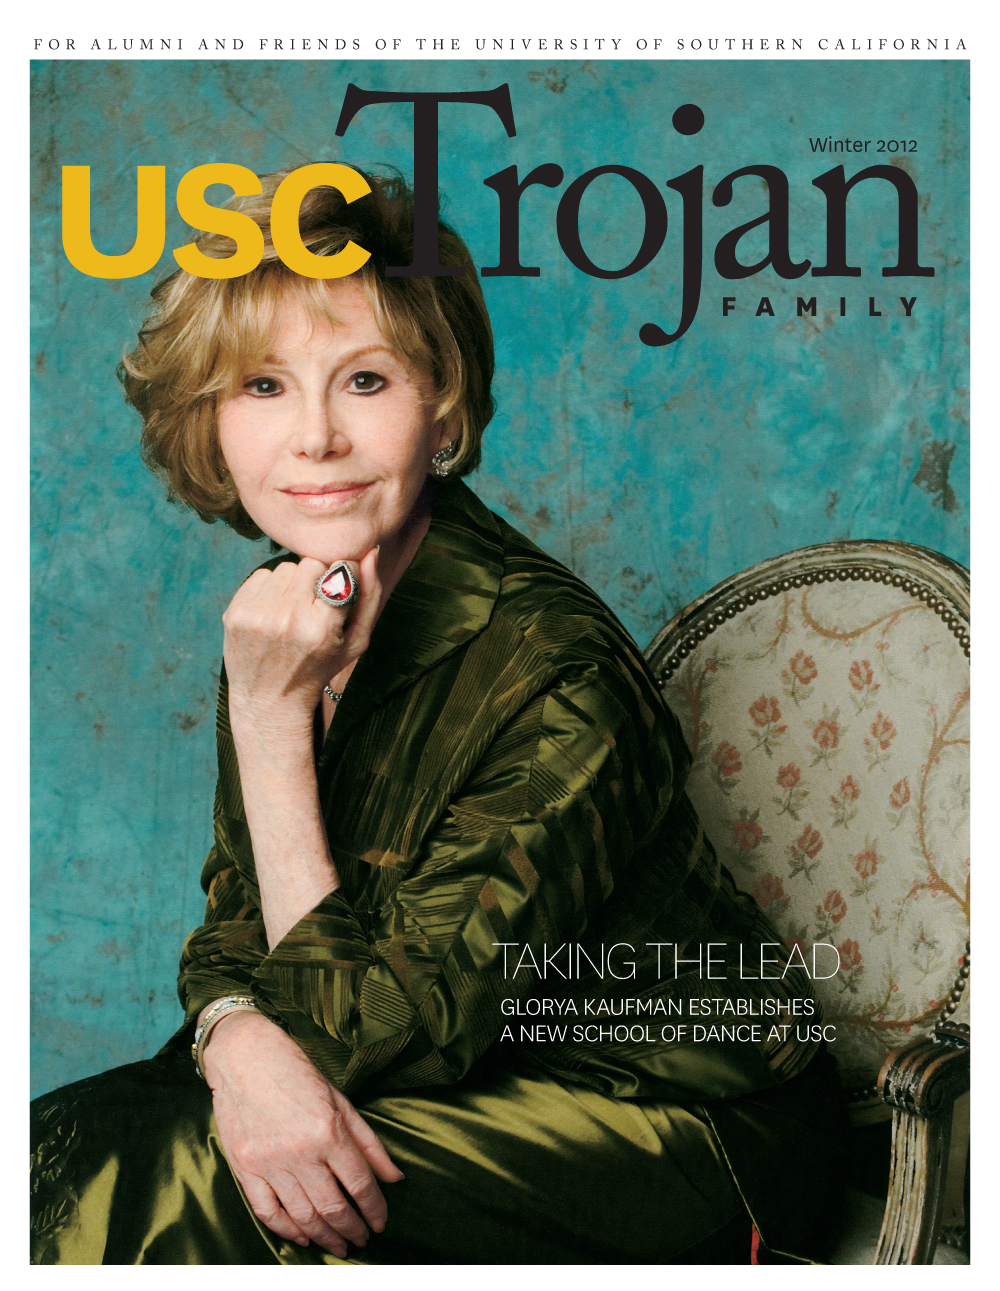 Winter 2012 Trojan Family Magazine cover